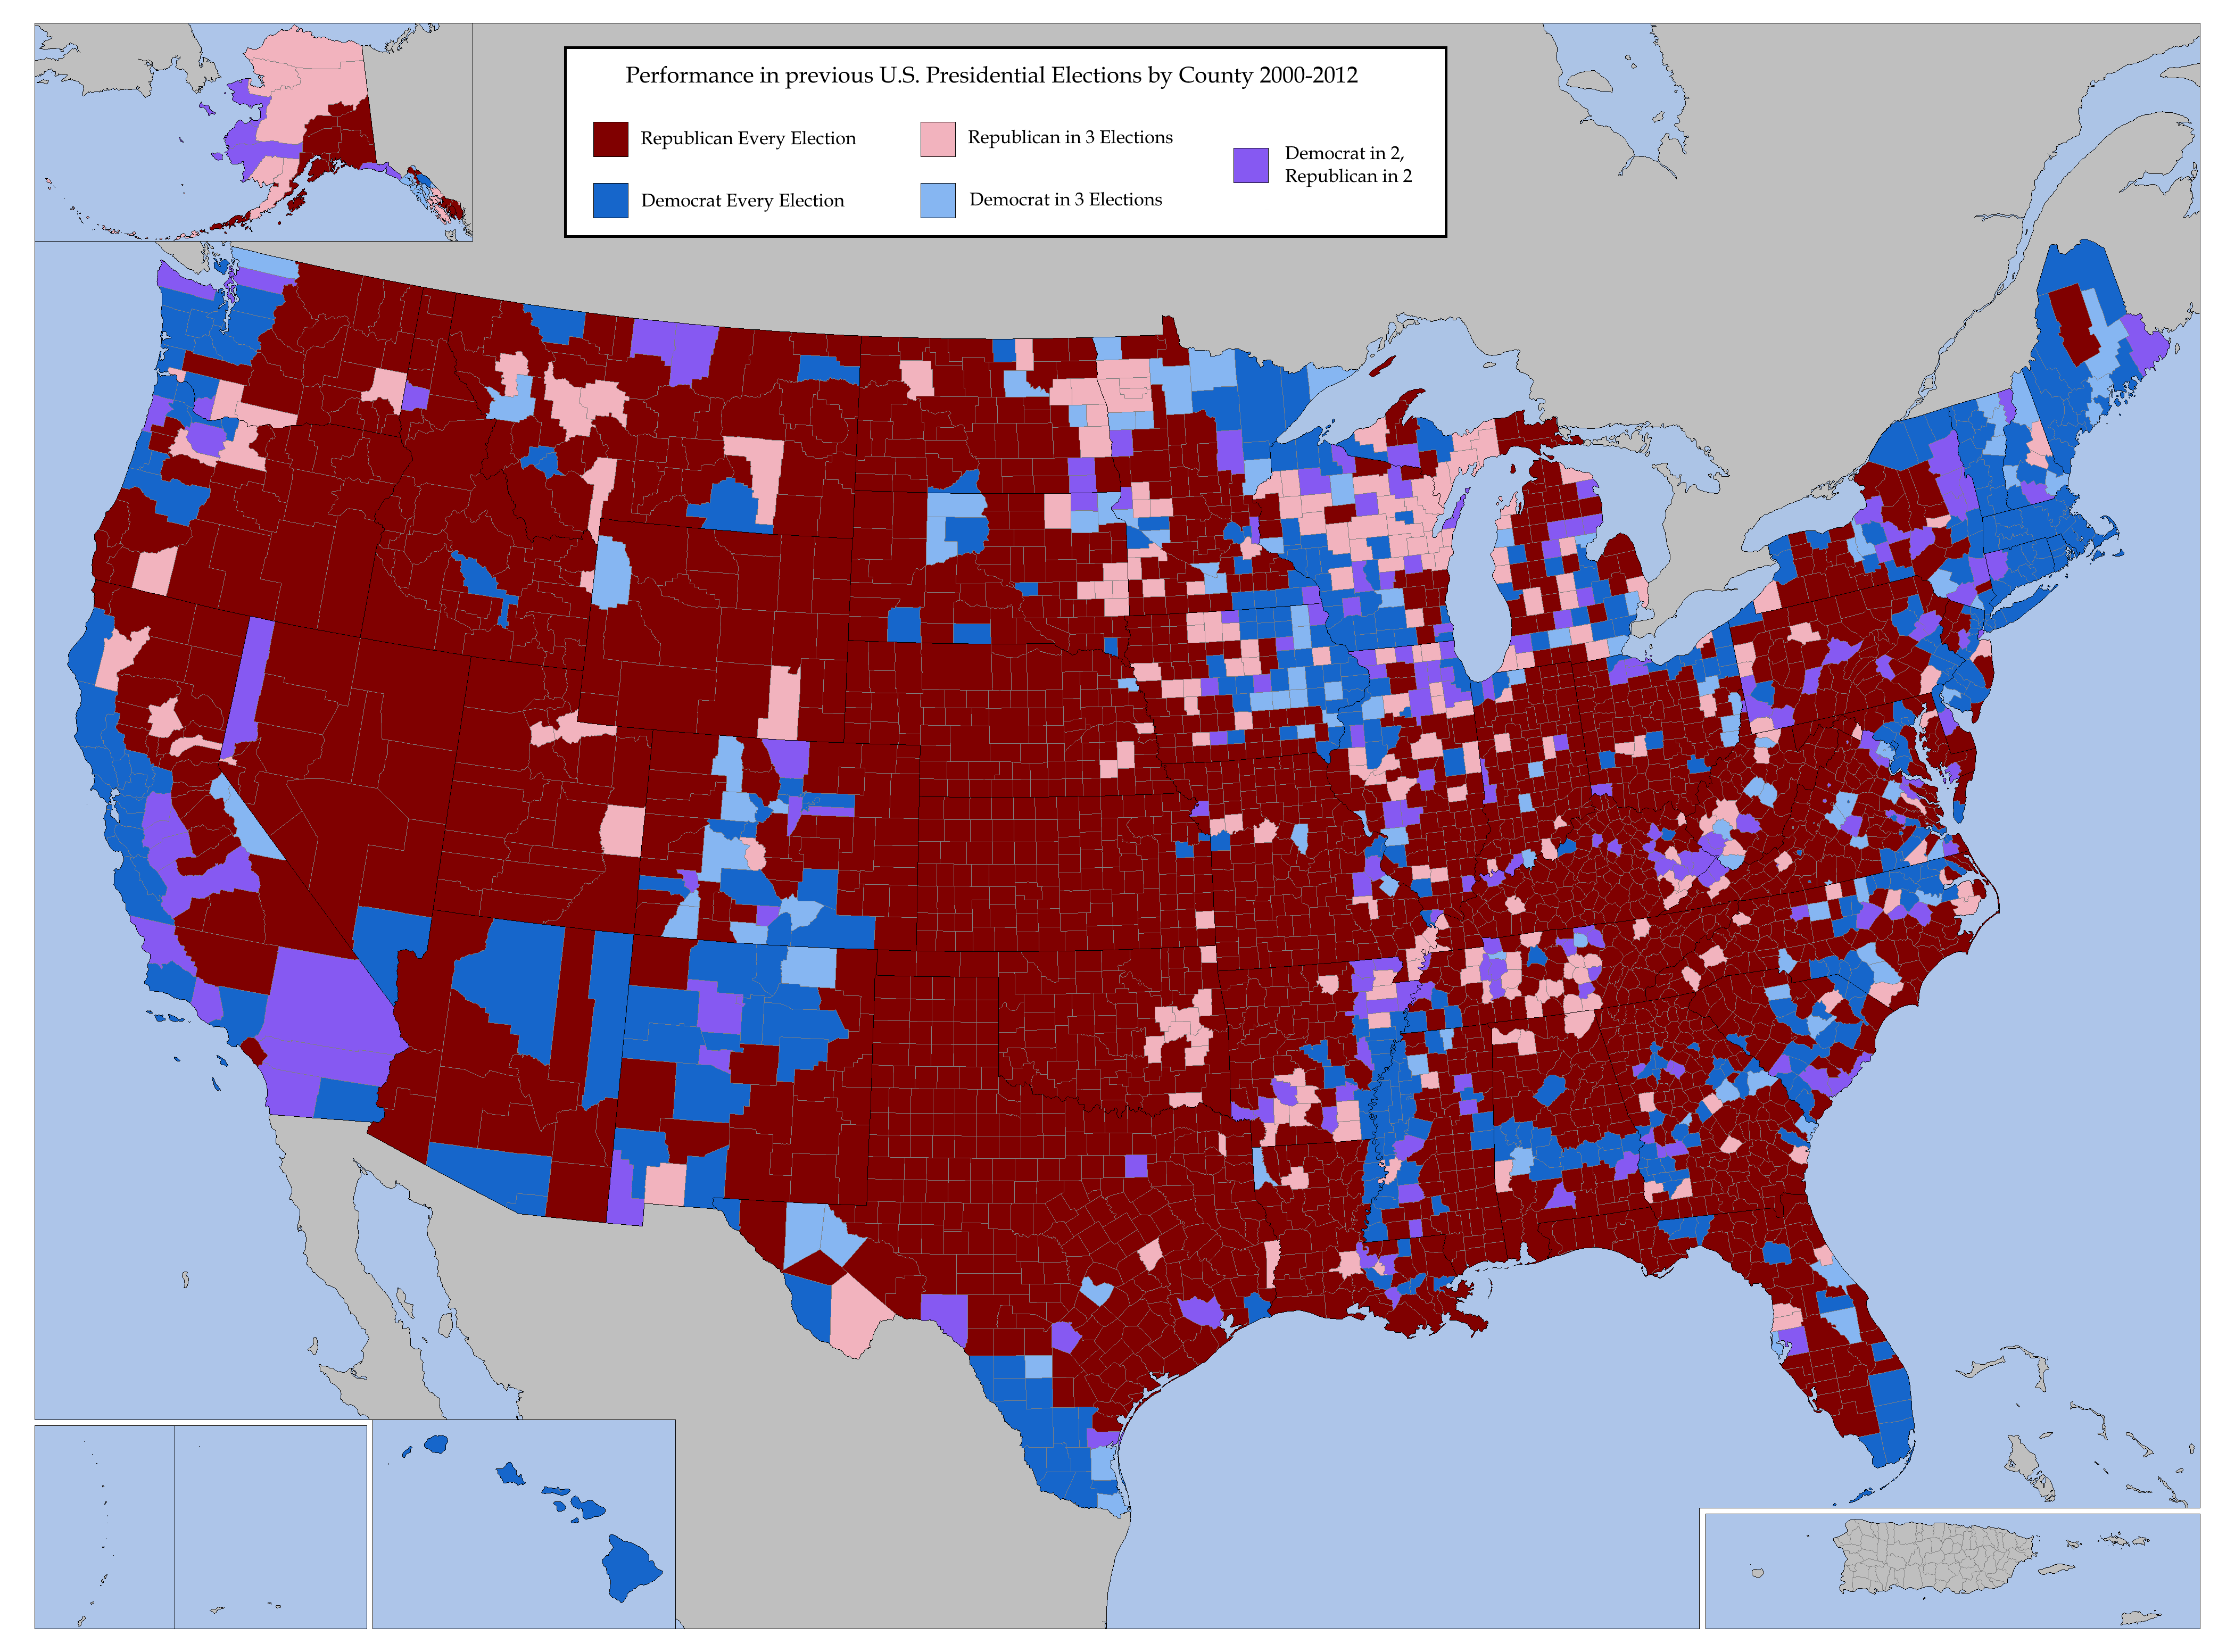 us presidential elections by county  oc  mapporn - i'm not sure how to edit the main link but here's a fixed version